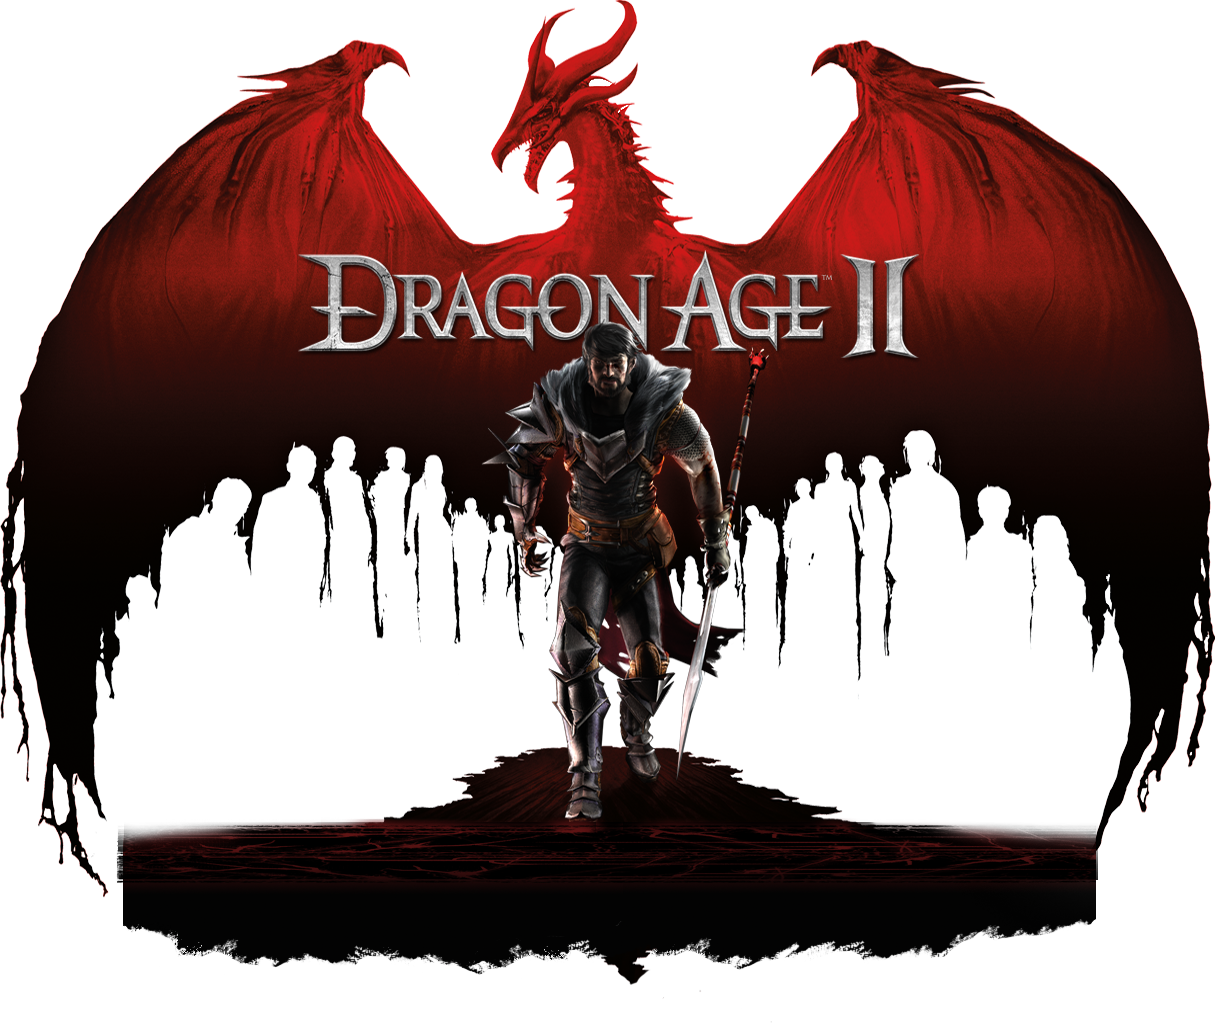 Revenge drawing dragon age. Review a hit or